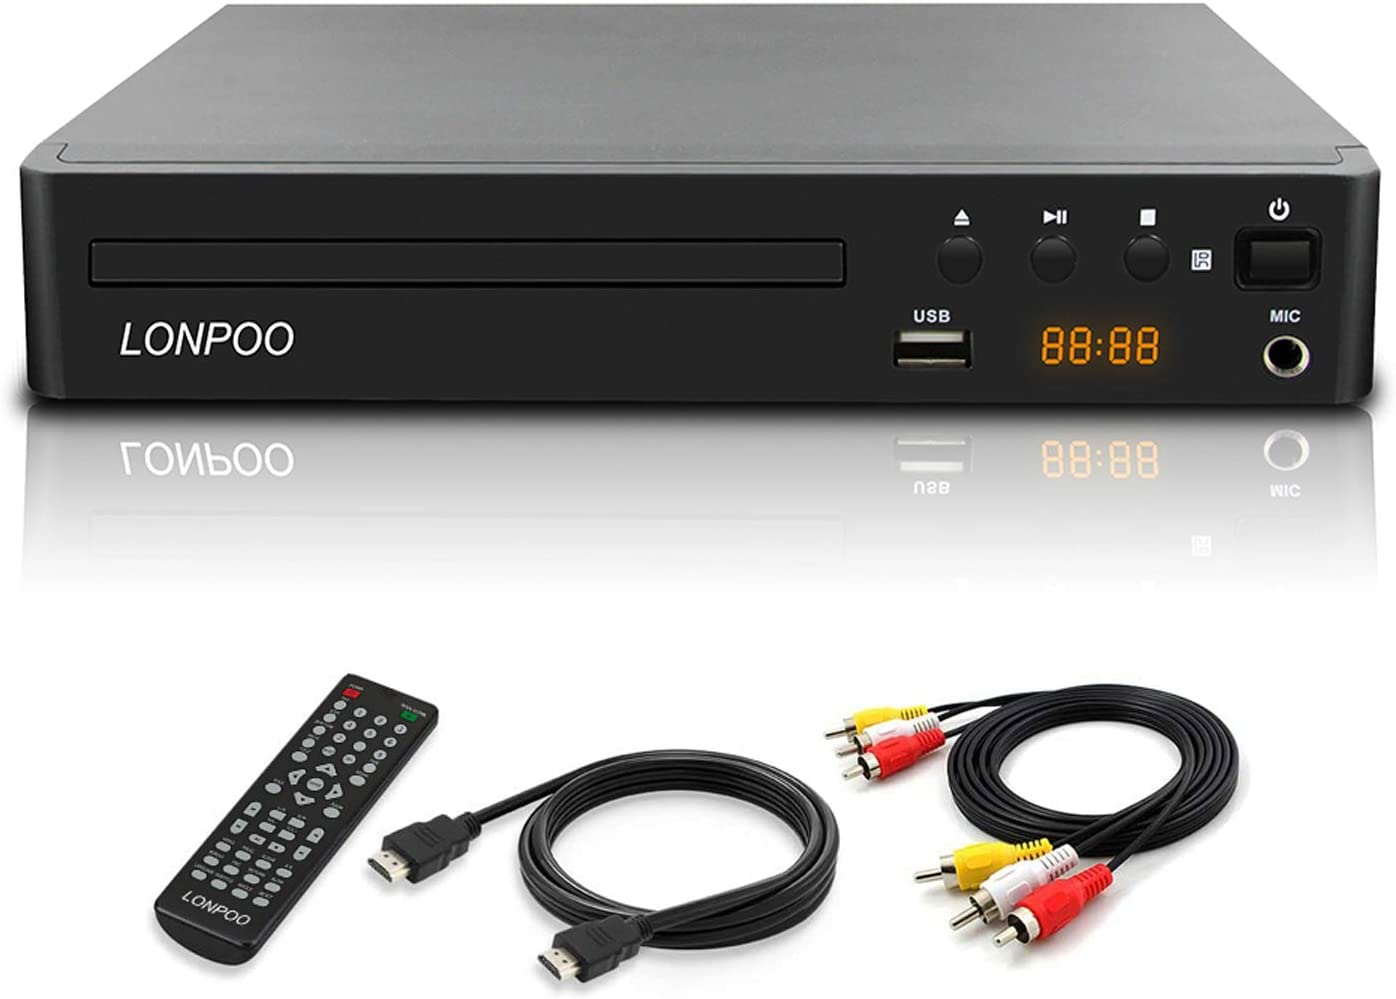 LONPOO Compact DVD CD Player Codefree Multi Region Play, Support 1080P Upscaling, HDMI & AV Output (Cable Included), USB2.0 Port Input, Mic Port